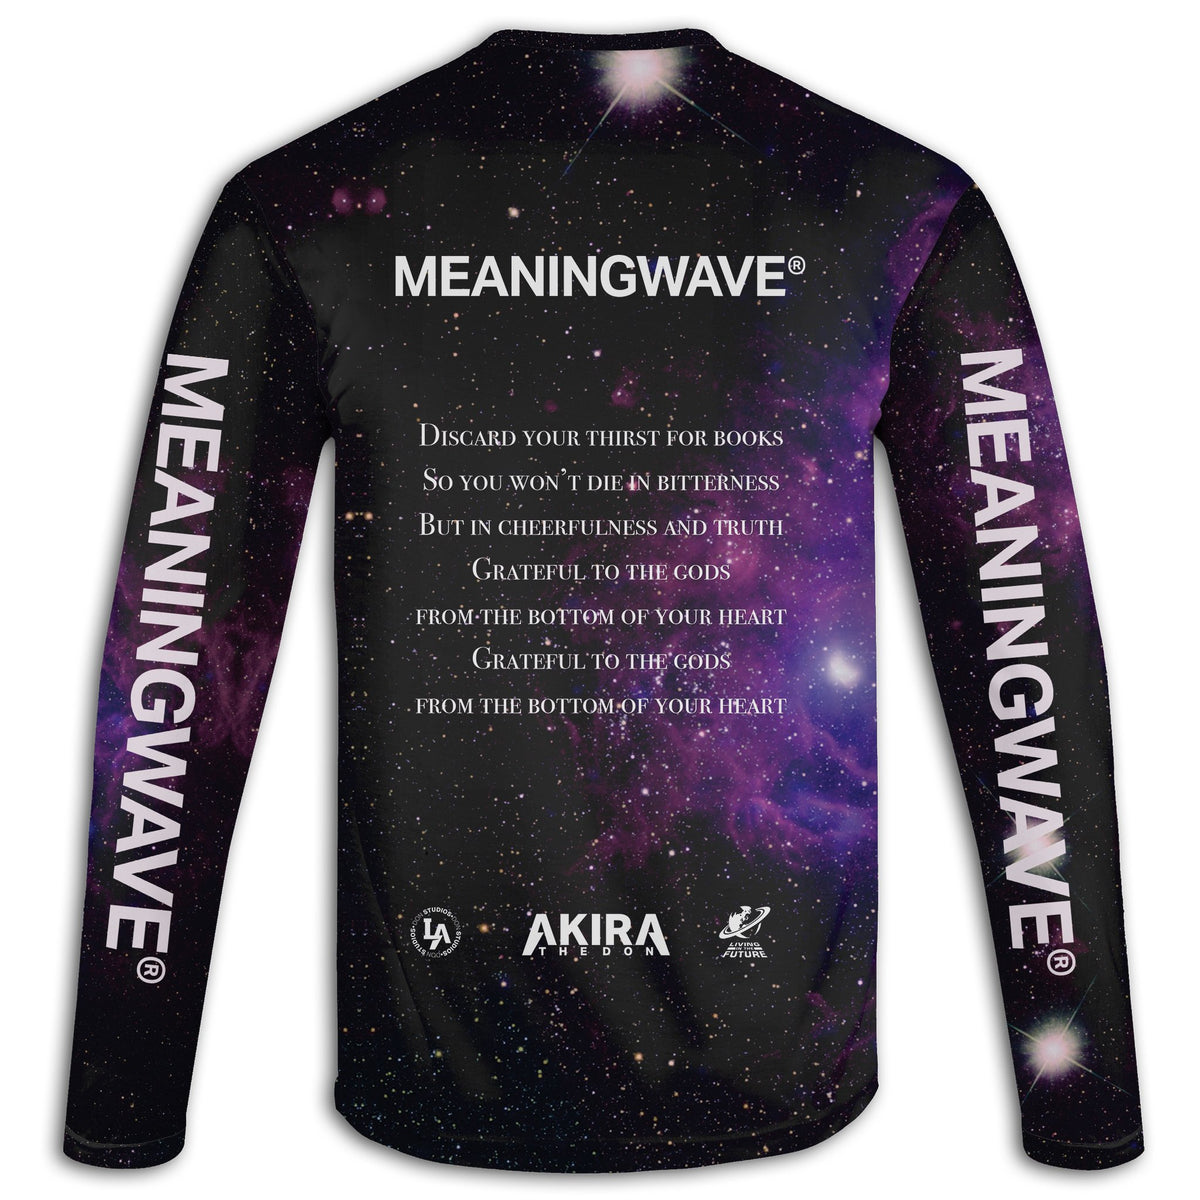 AKIRA THE DON & MARCUS AURELIUS - GRATEFUL TO THE GODS Long Sleeve Tee | meaningwave.com